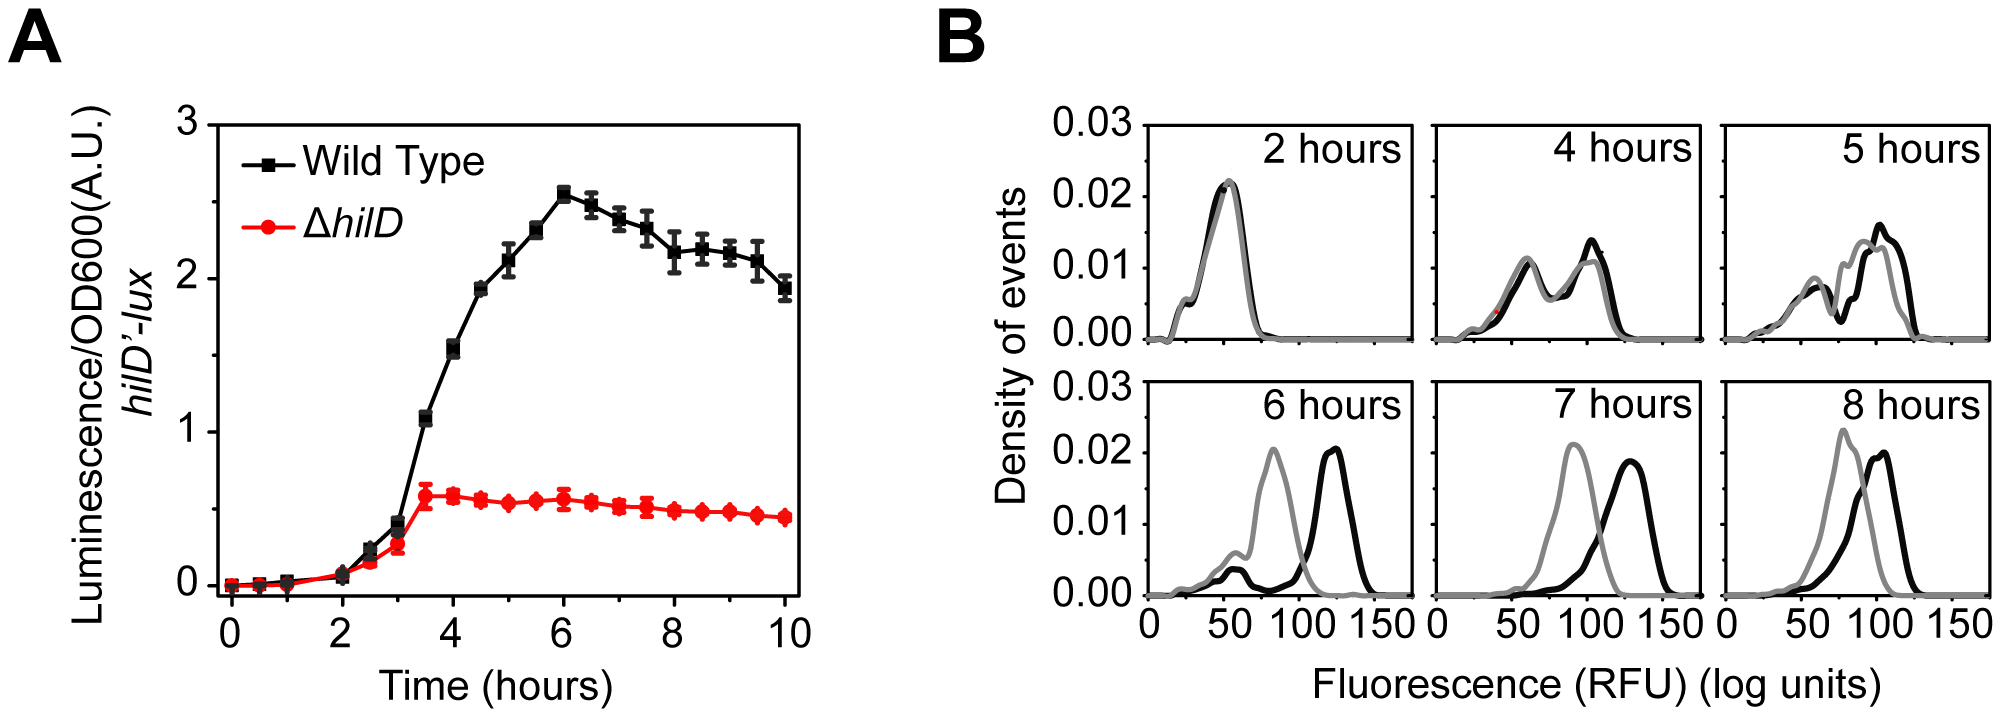 SPI1 gene expression is induced by a step increase in P<i><sub>hilD</sub></i> promoter activity.